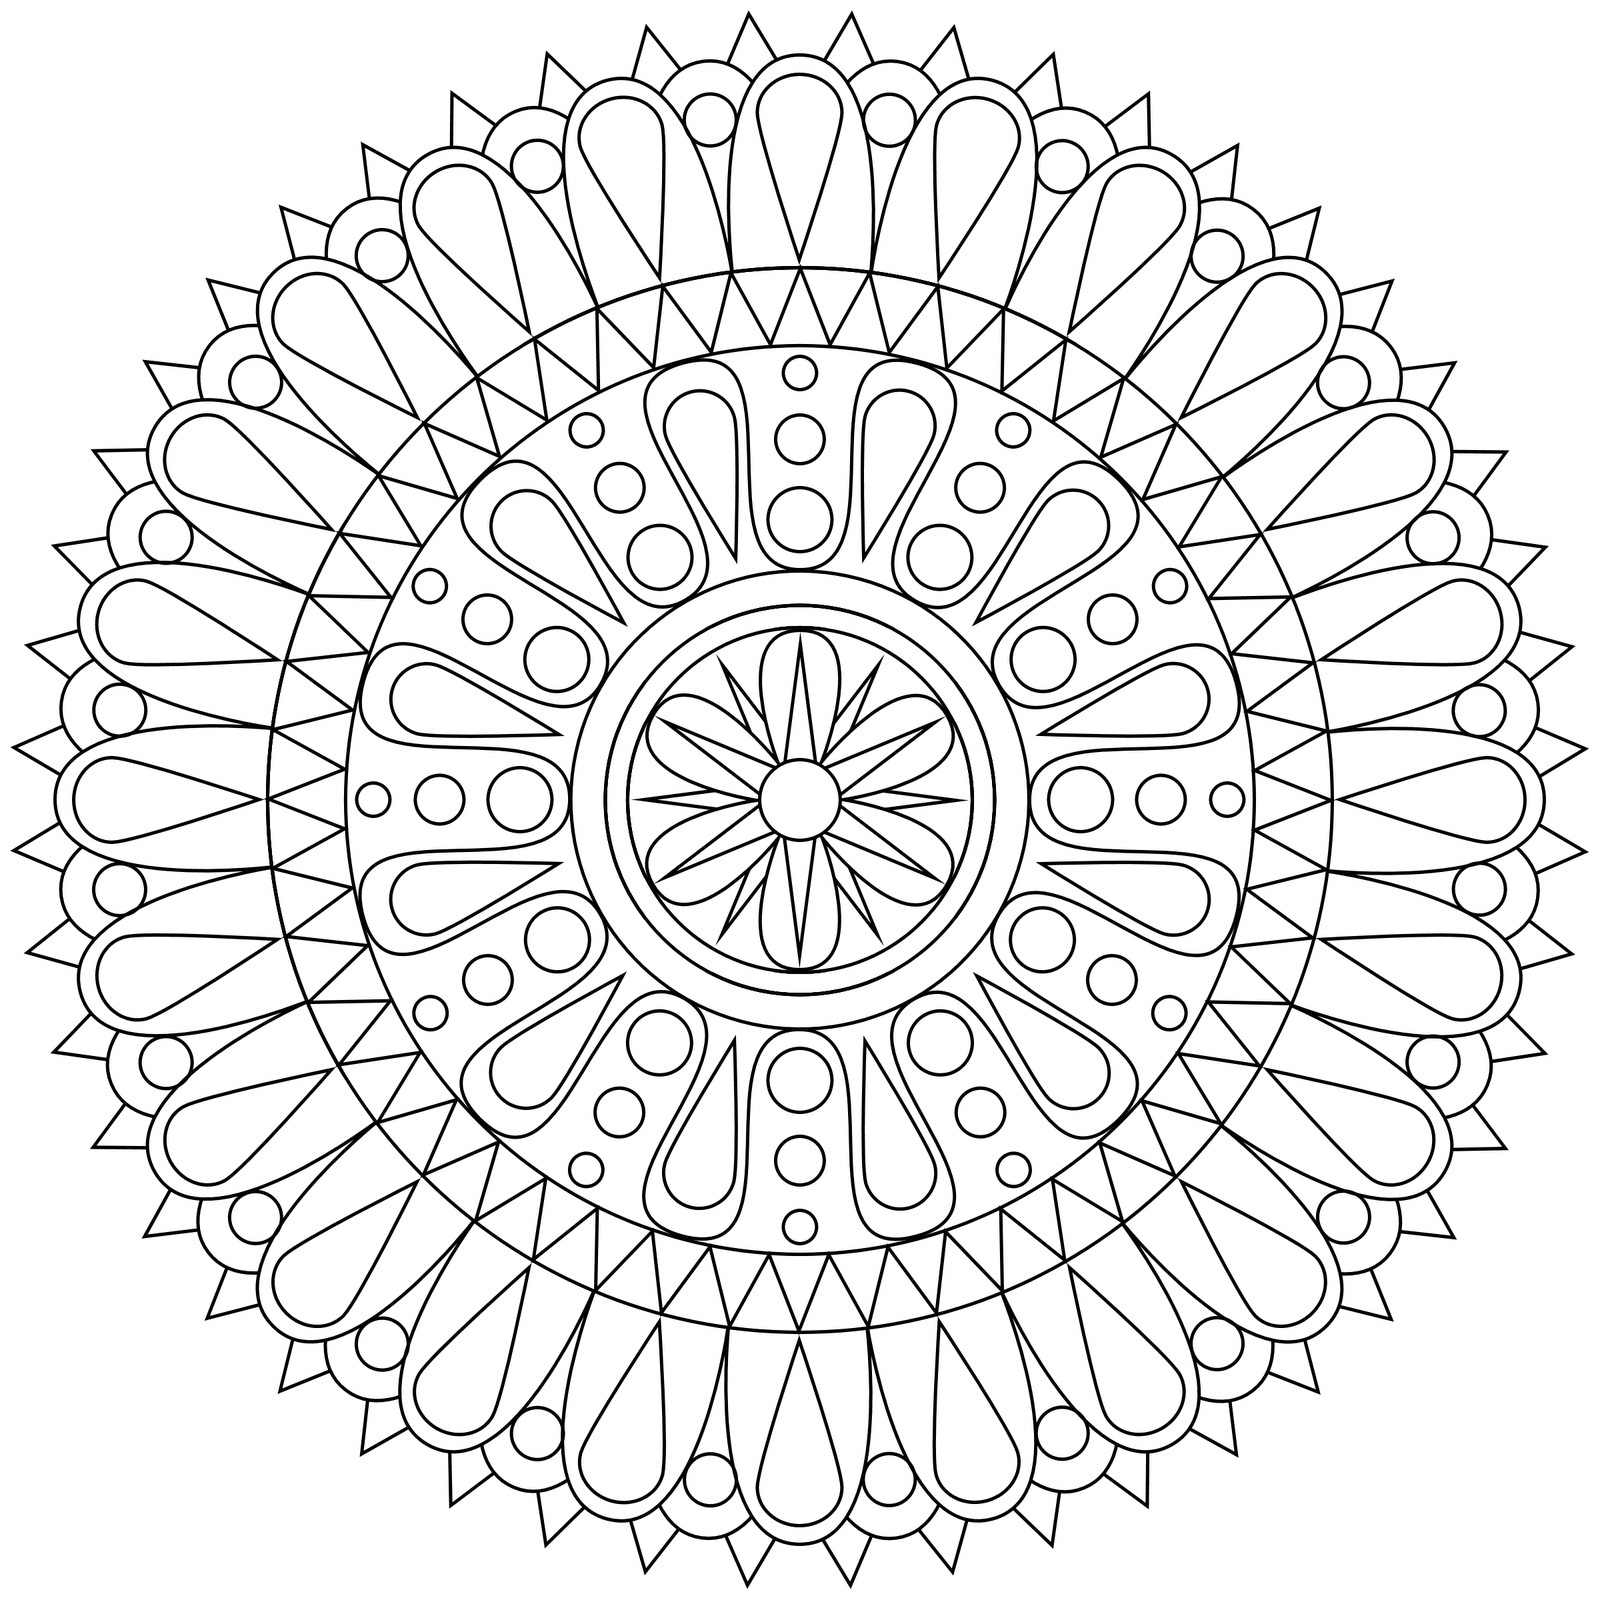 designs to color free free printable geometric coloring pages for kids designs color free to